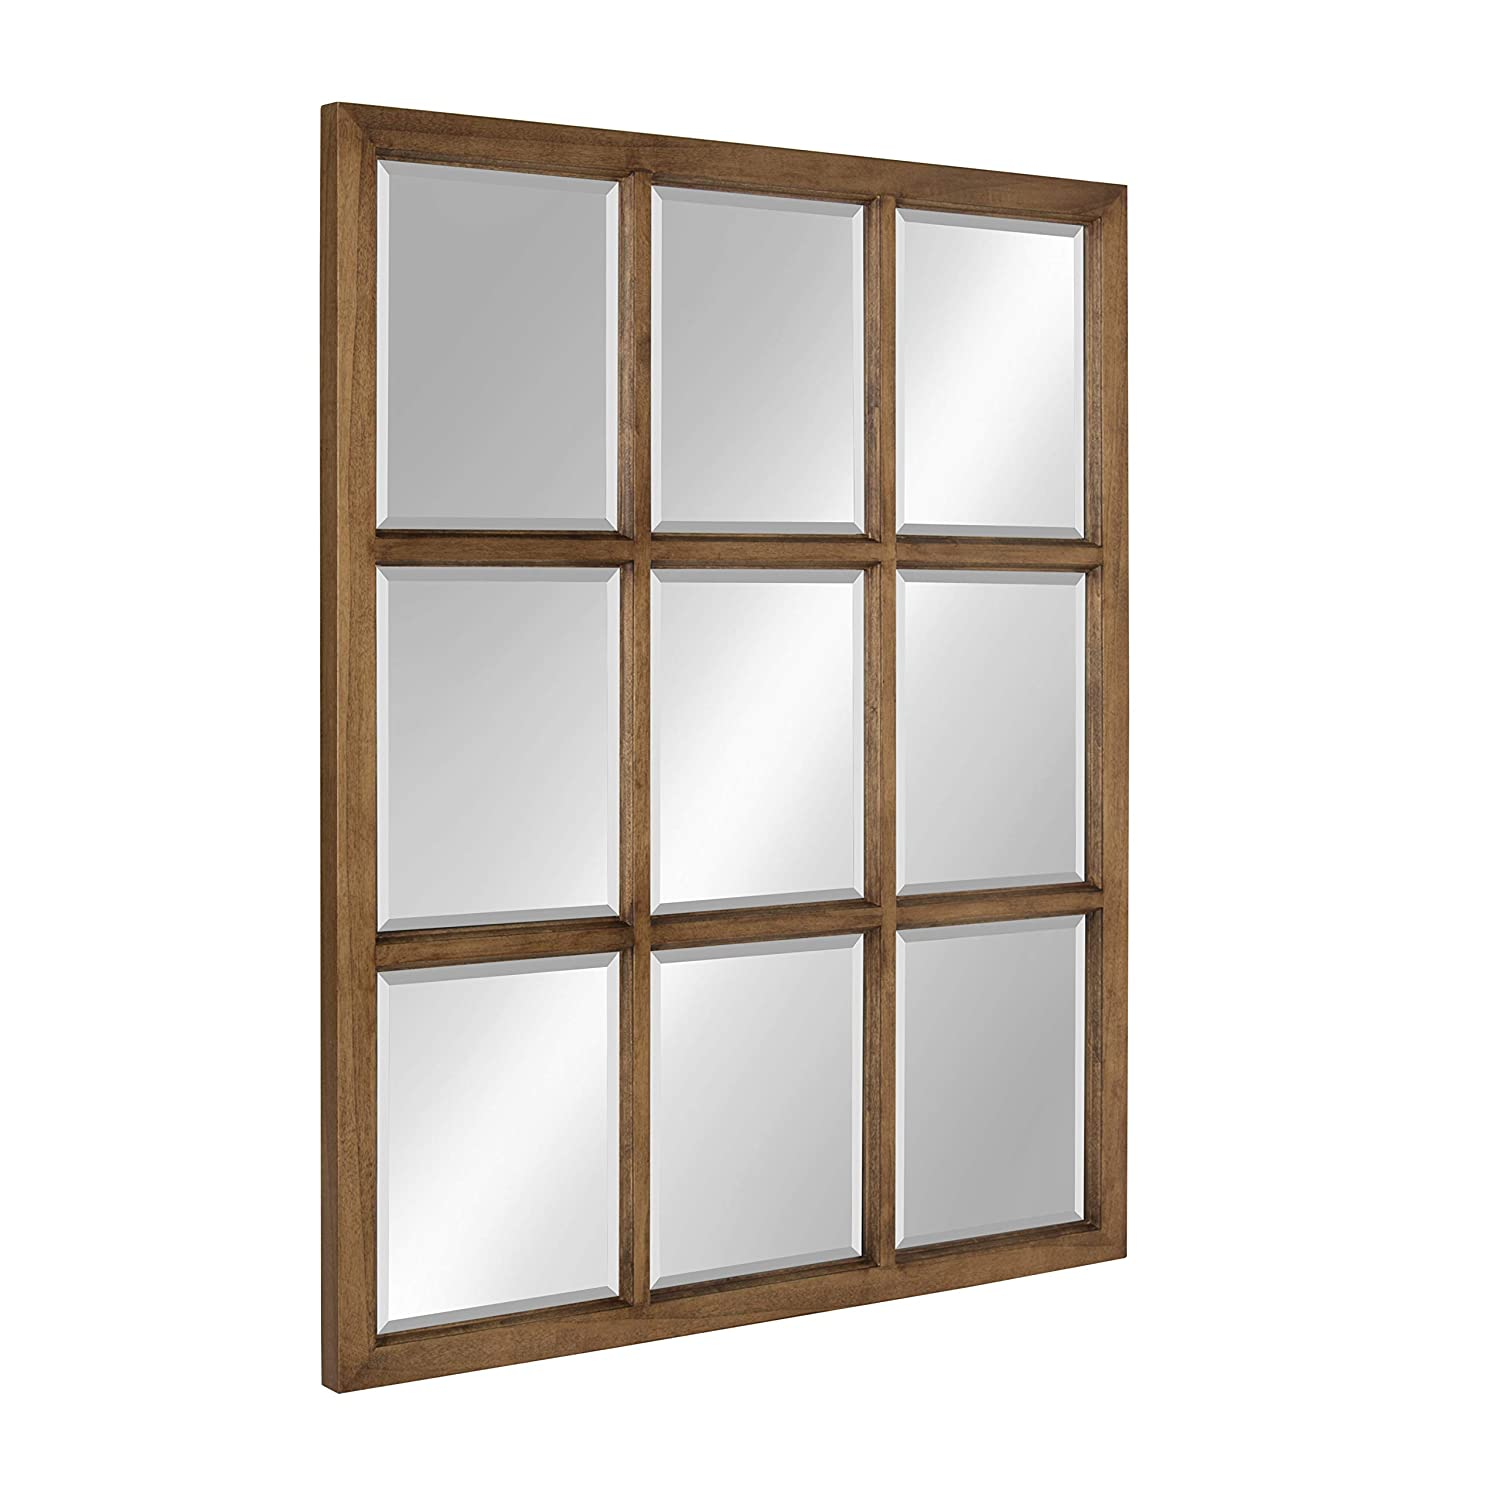 Kate and Laurel Hogan 9 Windowpane Wood Wall Mirror, 26×32, Brown